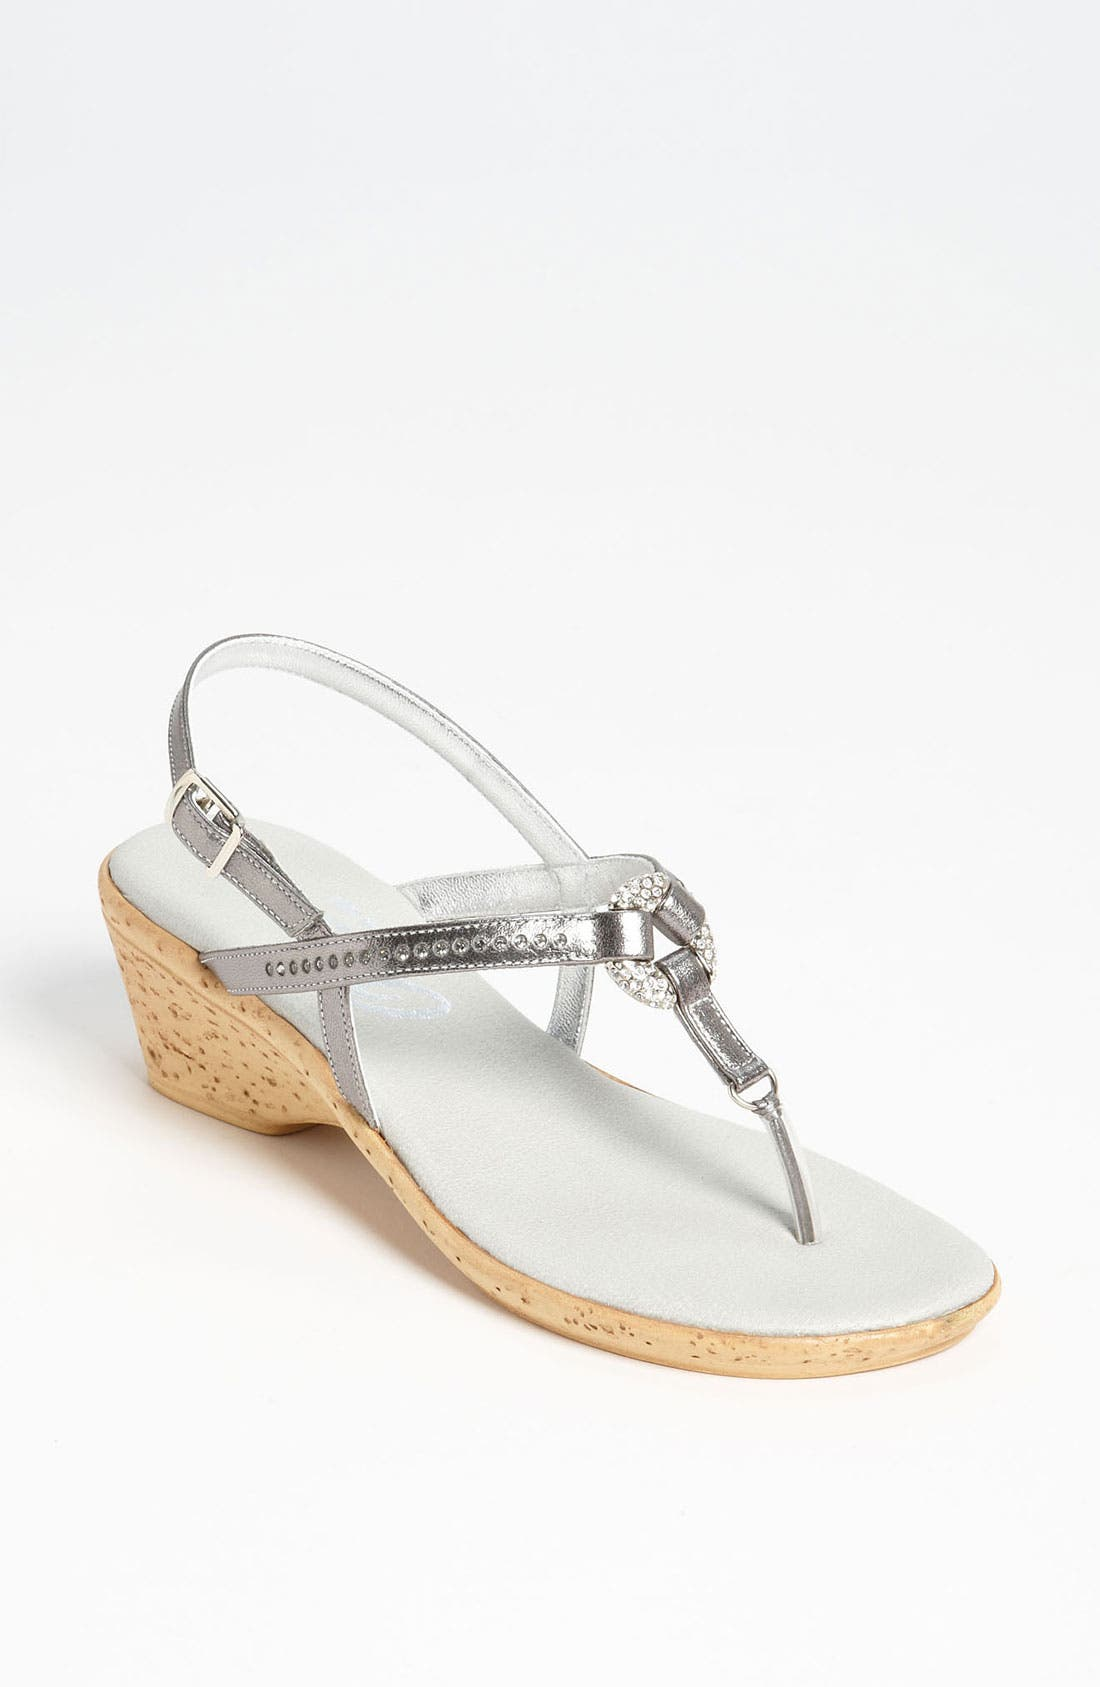 Alternate Image 1 Selected - ONEX MARLEE SANDAL